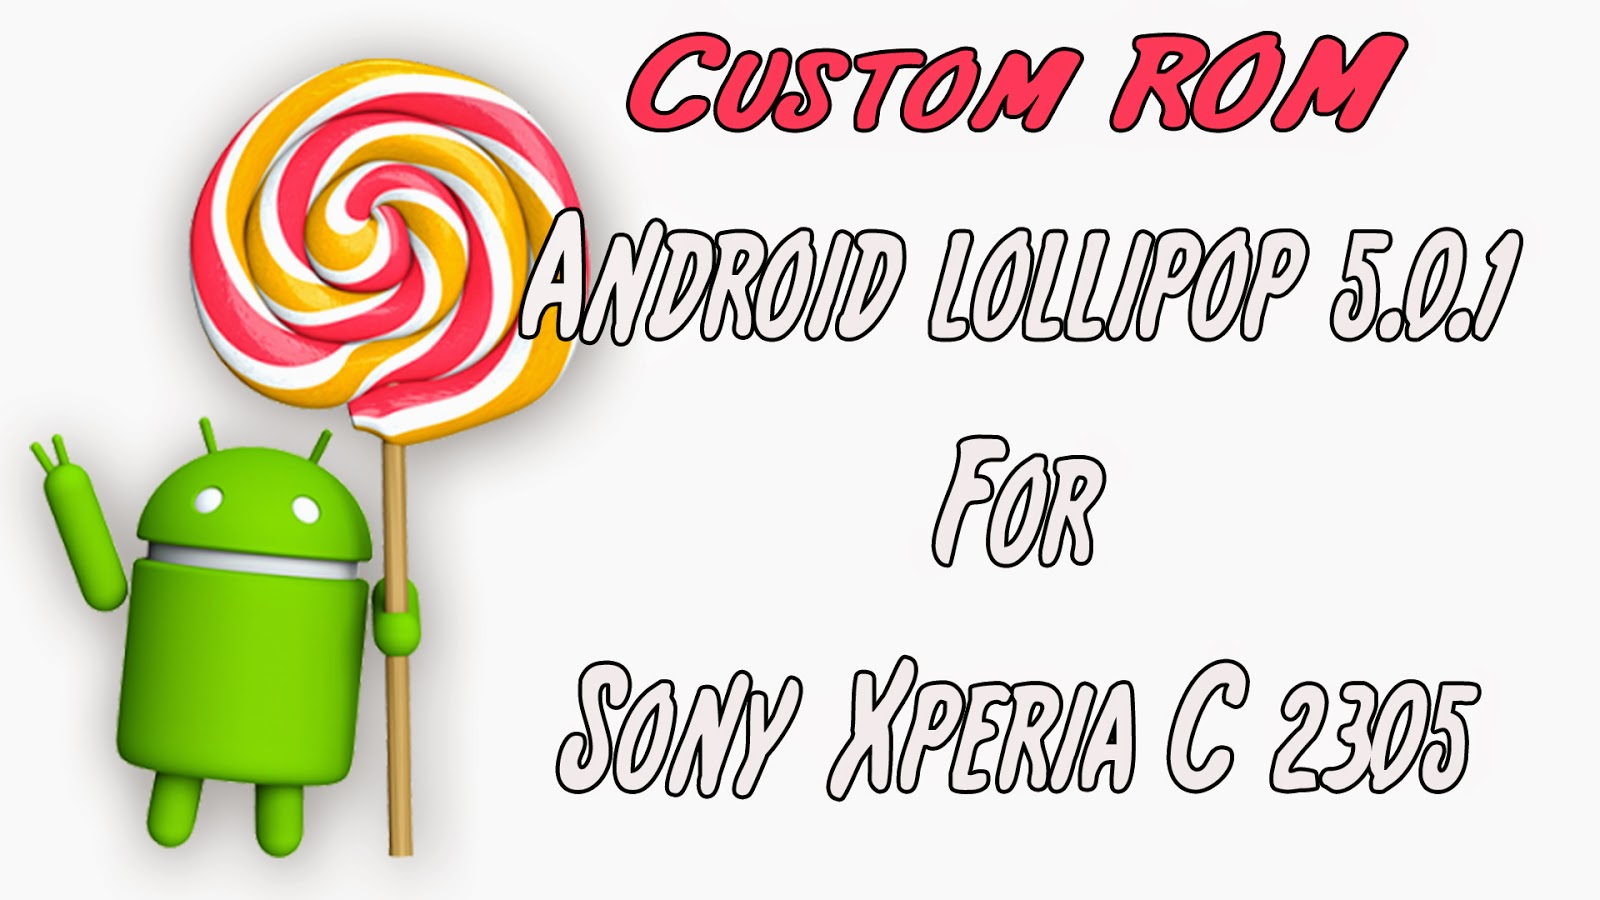 Android Lollipop 5 0 1 For Sony Xperia C 2305 - AndroidMkab com